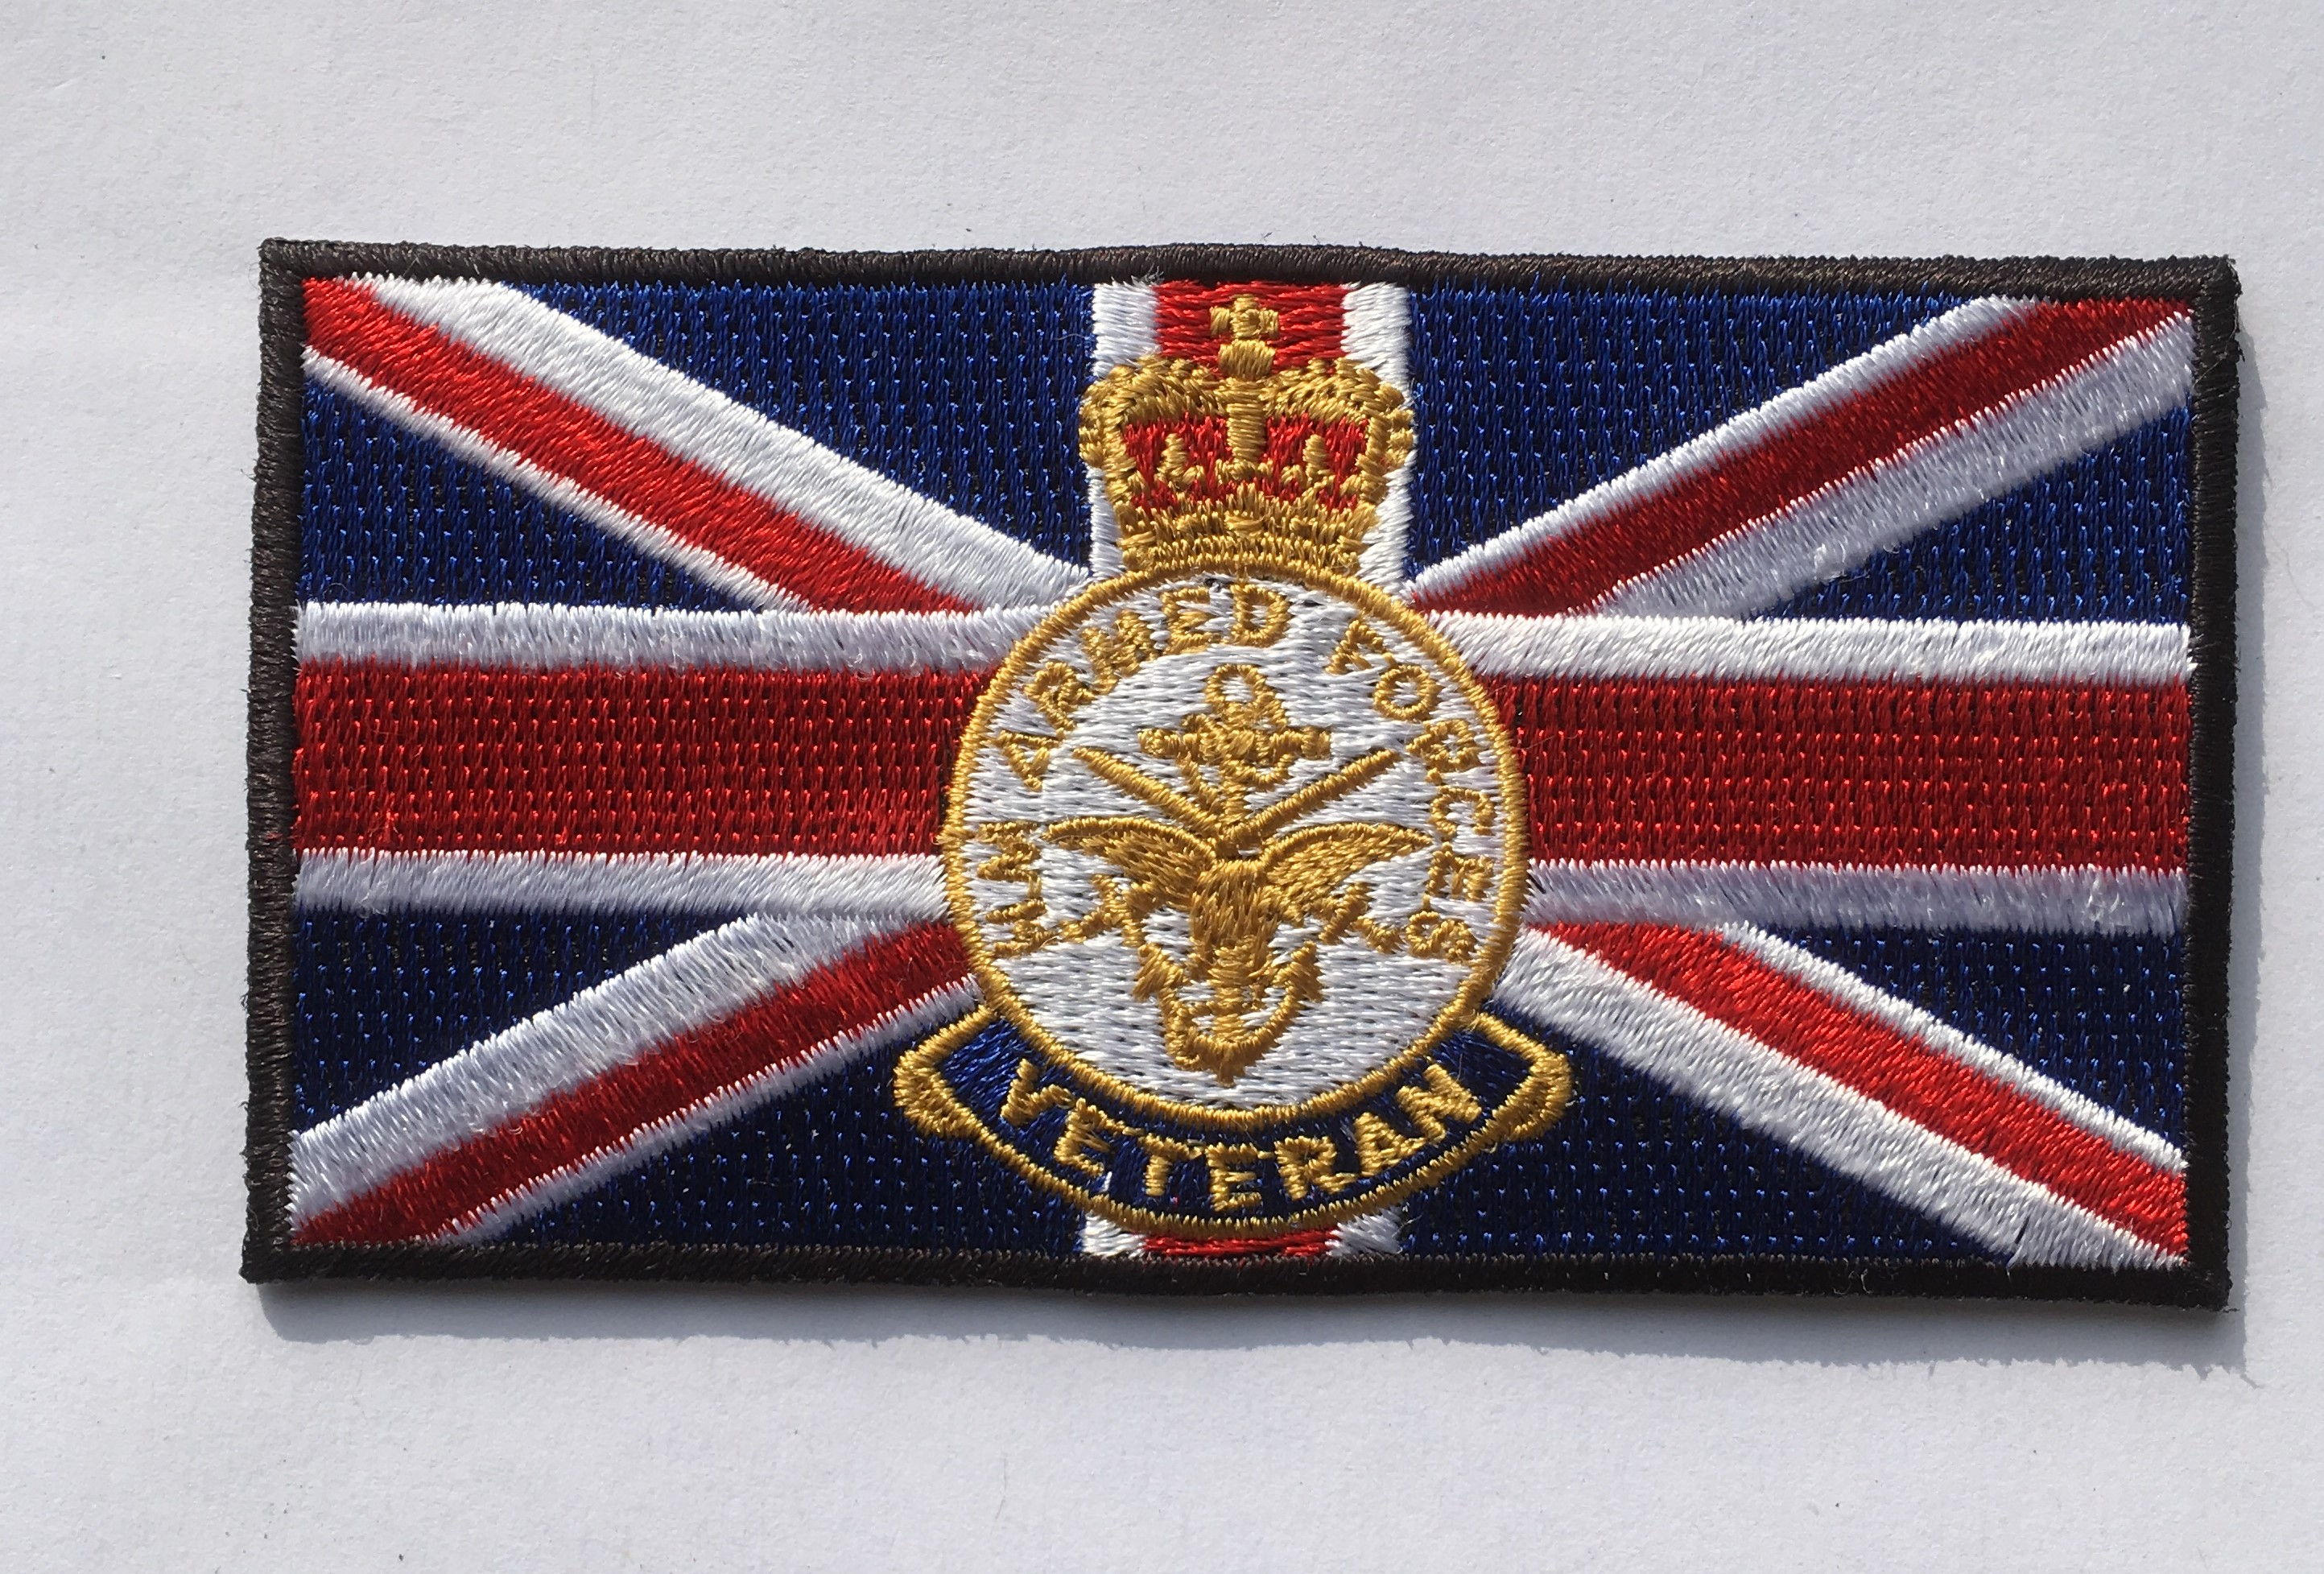 Union jack with HM Armed Forces Veteran crest